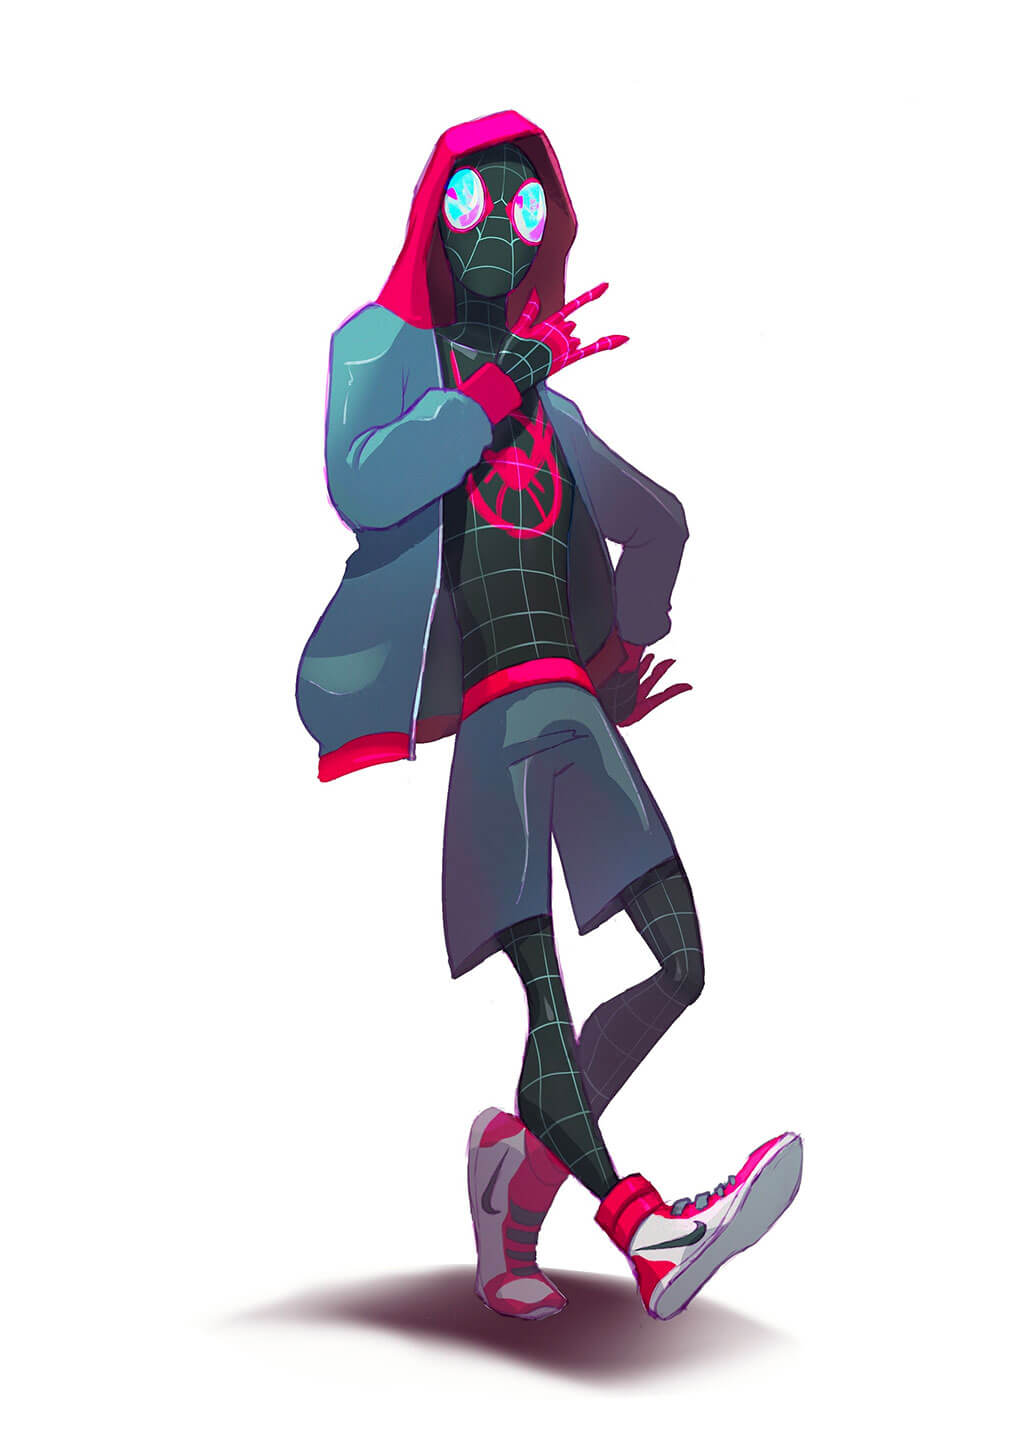 Spider-Man Fan Art by Michelle Lo